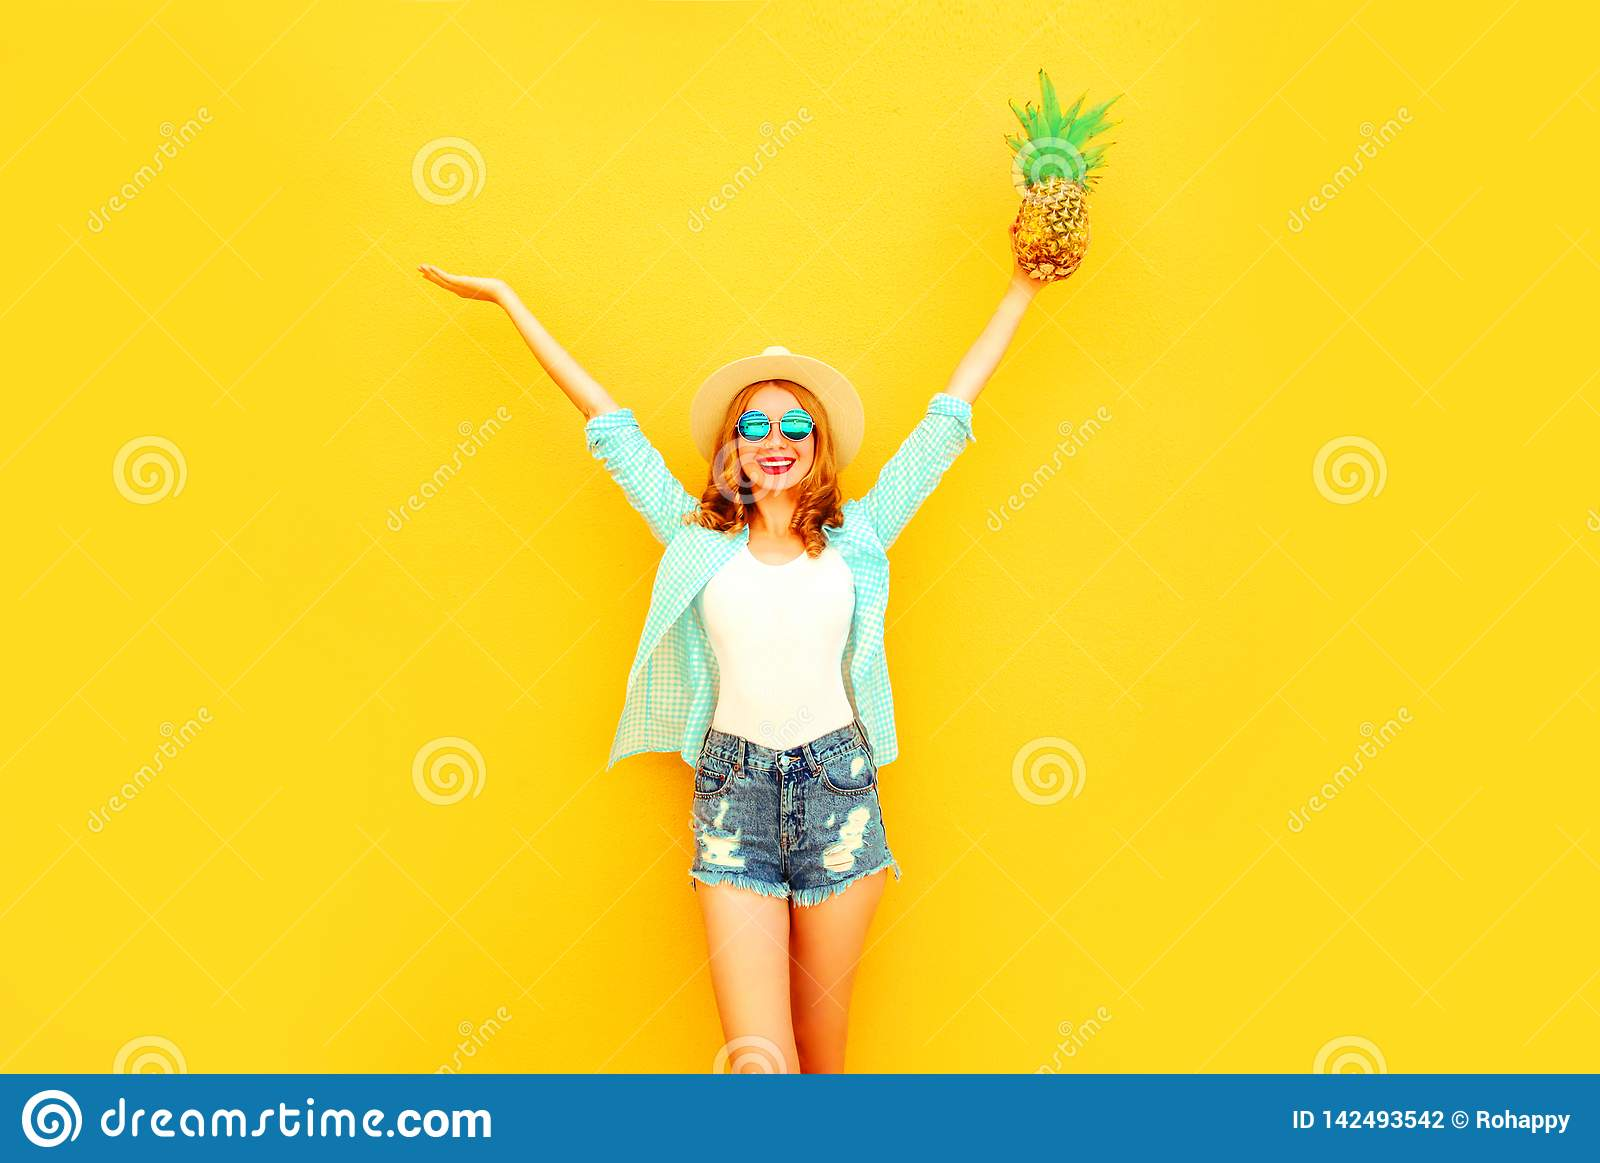 Happy smiling young woman raises her hands up with pineapple having fun in summer straw hat, sunglasses, shorts on colorful yellow